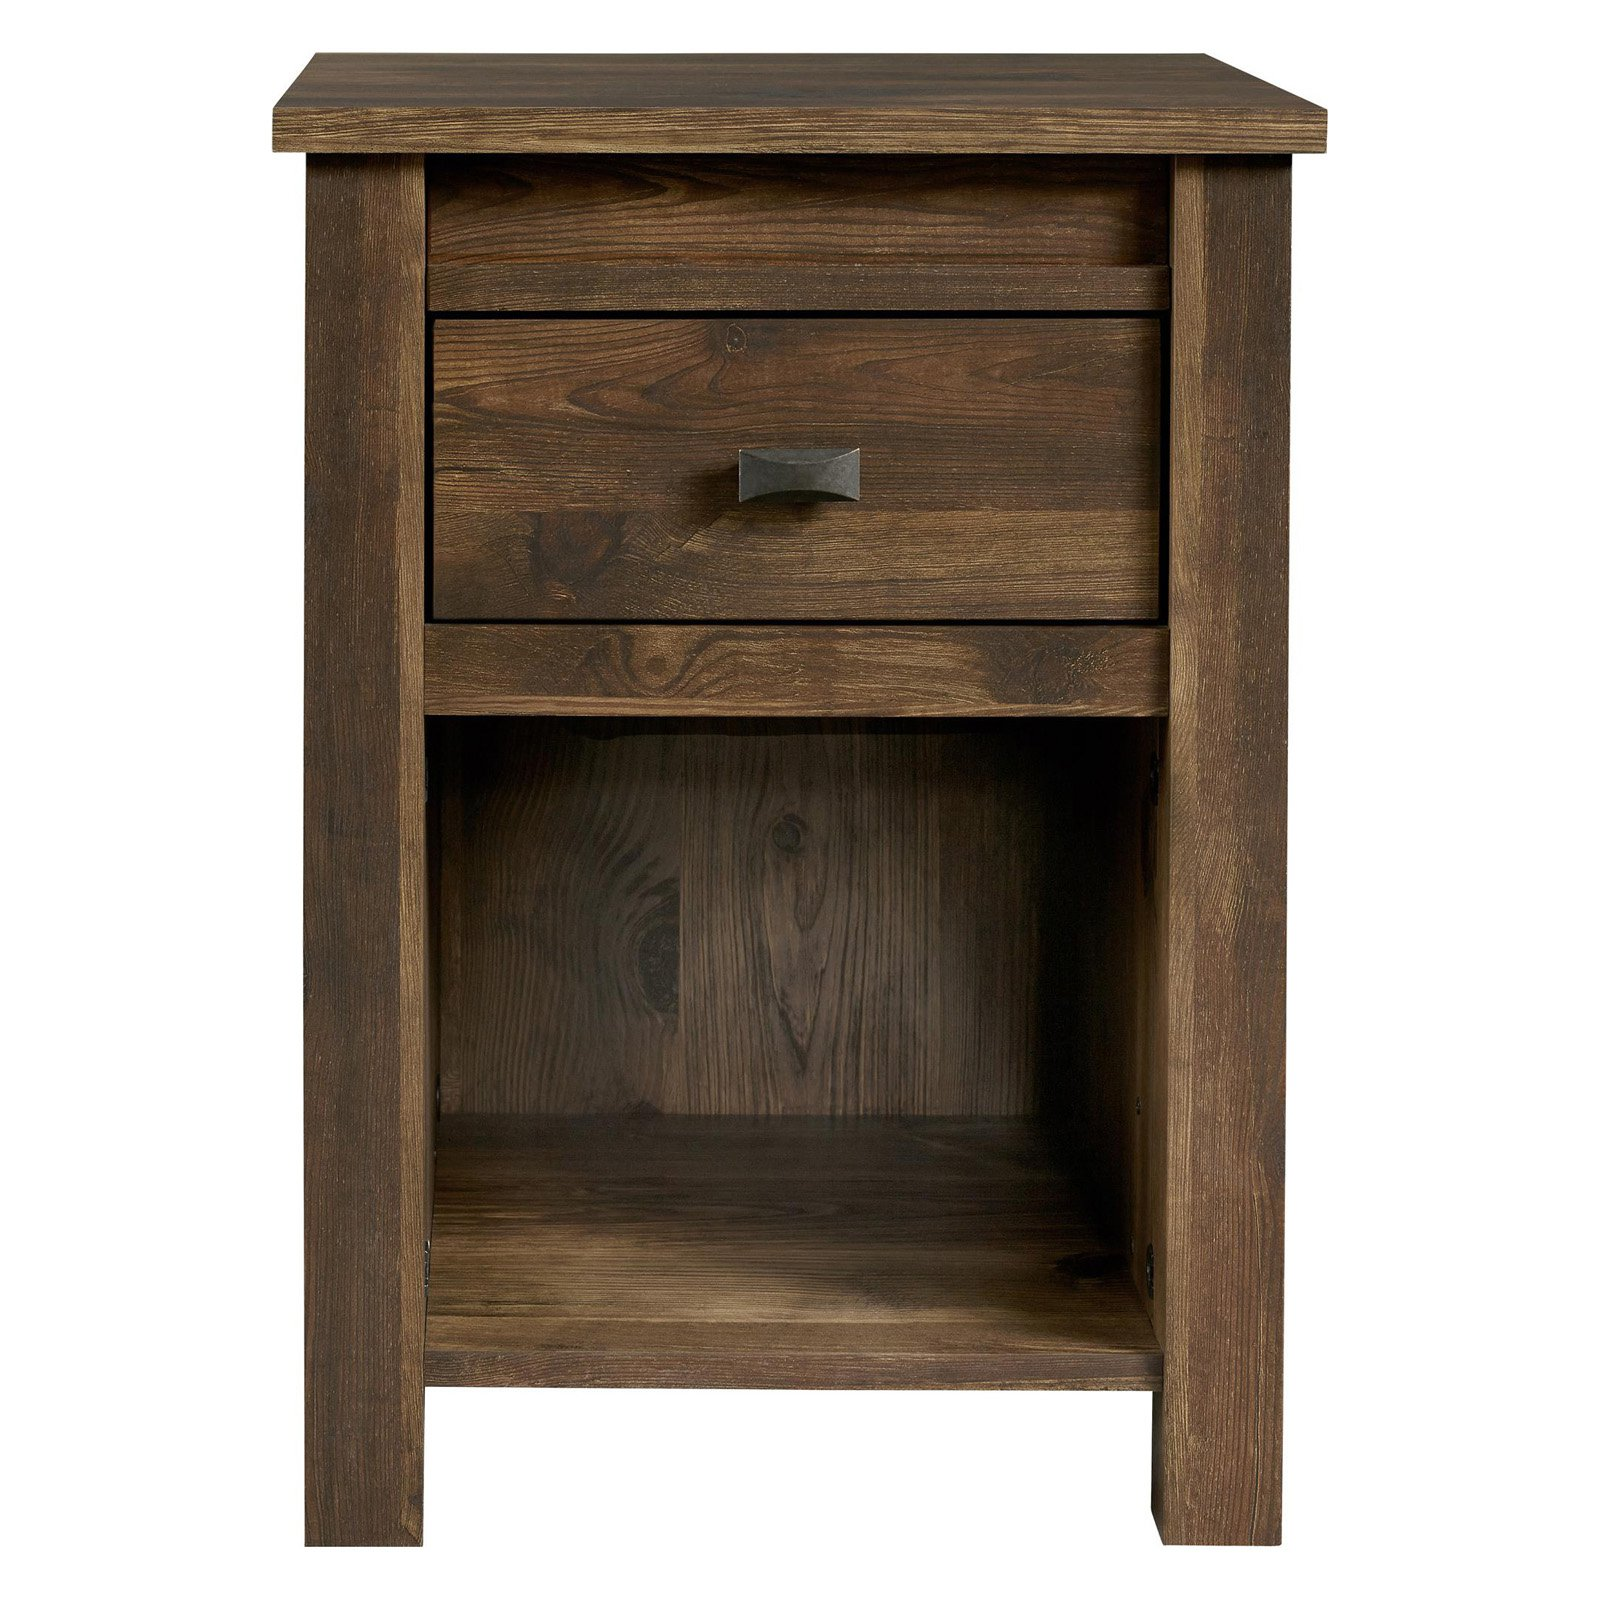 Better Homes and Gardens Falls Creek Nightstand, Weathered Dark Pine